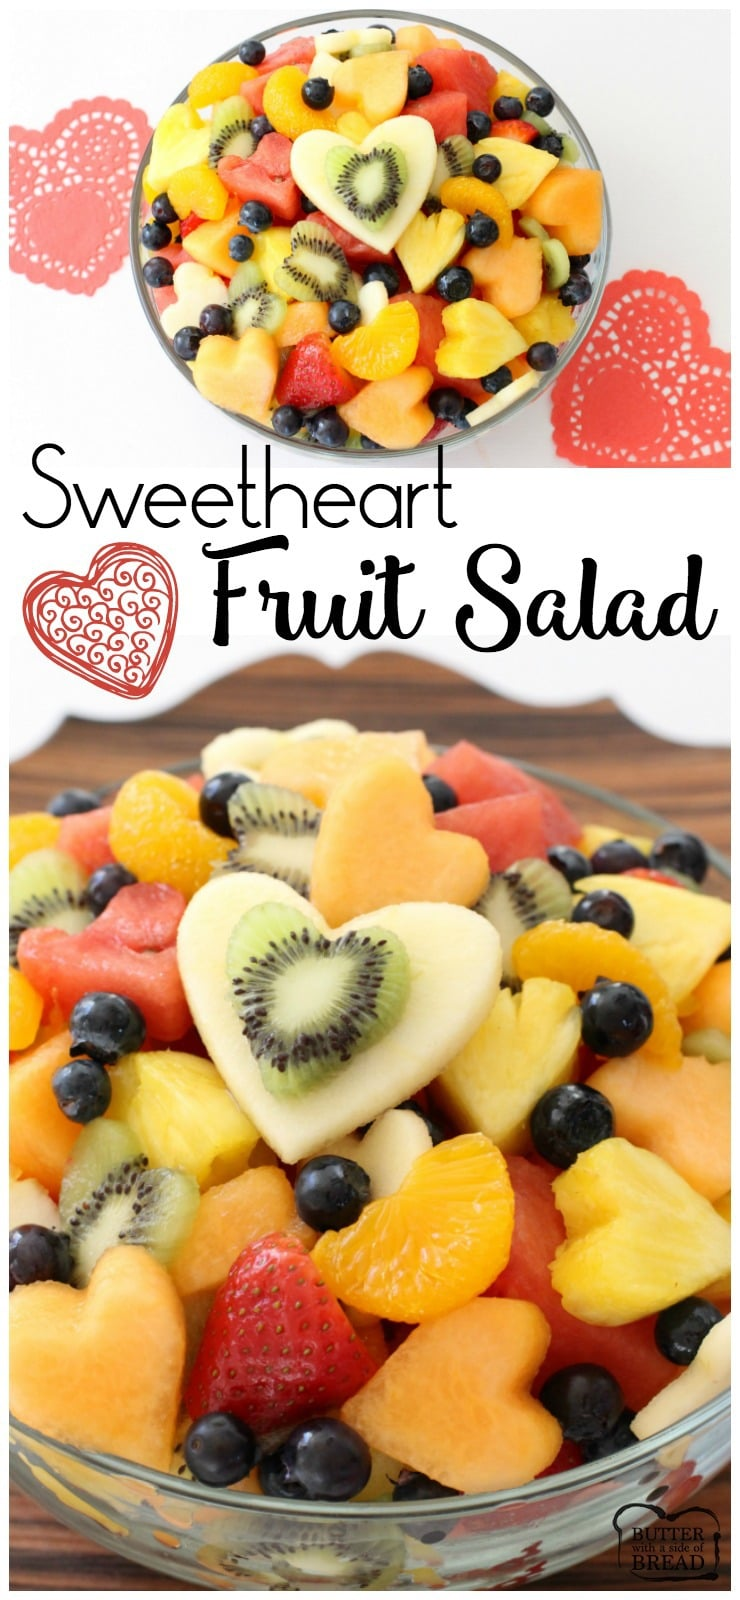 This sweetheart fruit salad requires just a little extra effort, but makes this lovely take on a classic fruit salad perfectly suited for Valentine's Day!